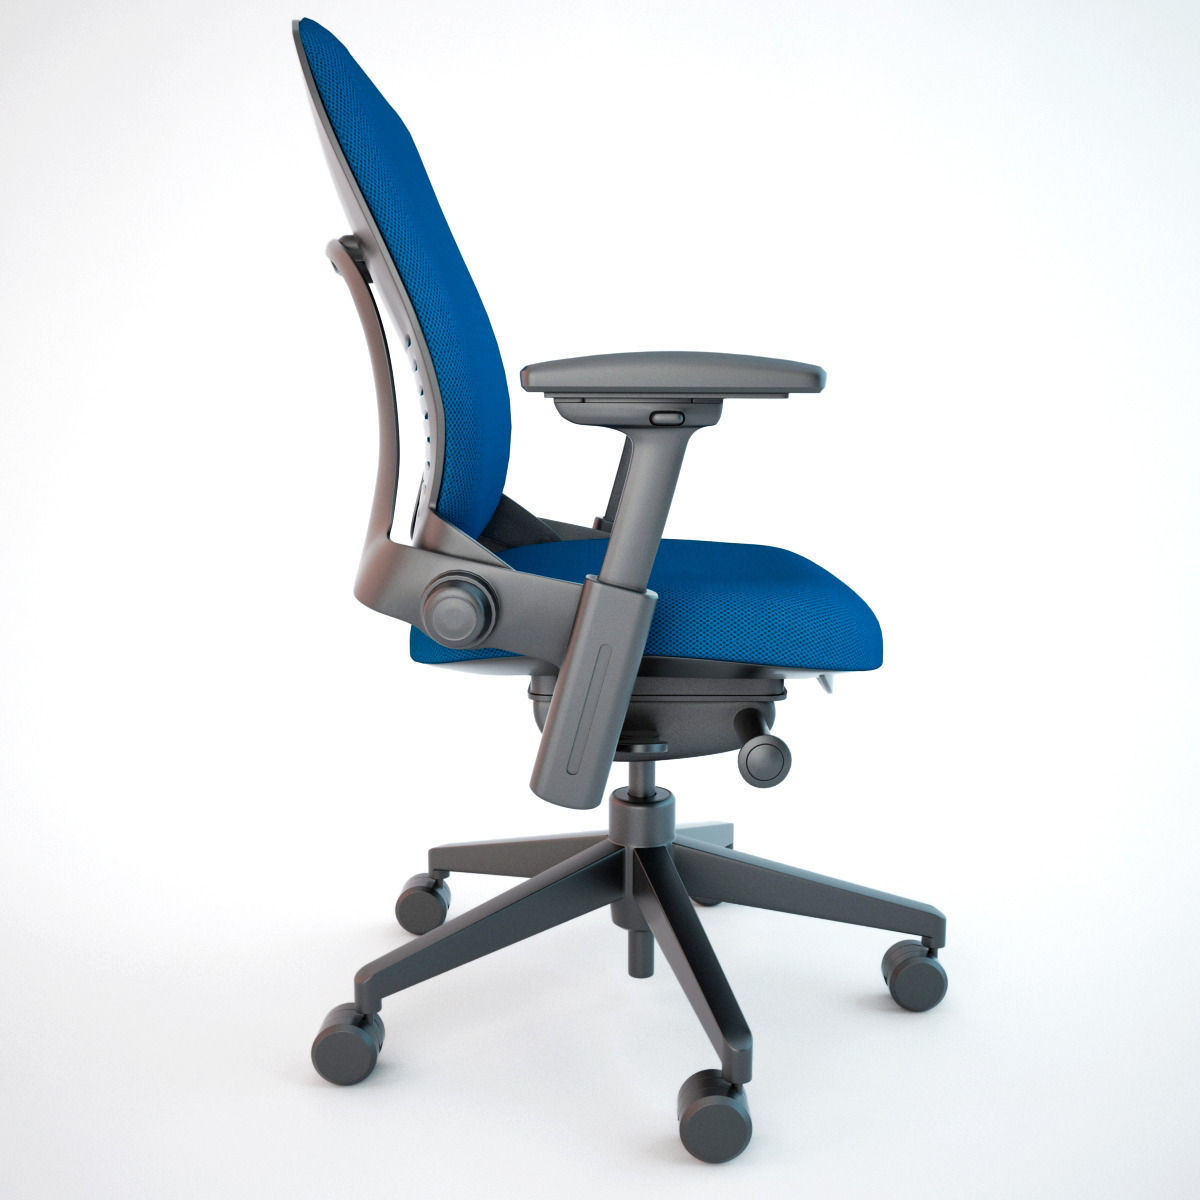 office chair 3d model wooden parts suppliers steelcase leap max obj fbx